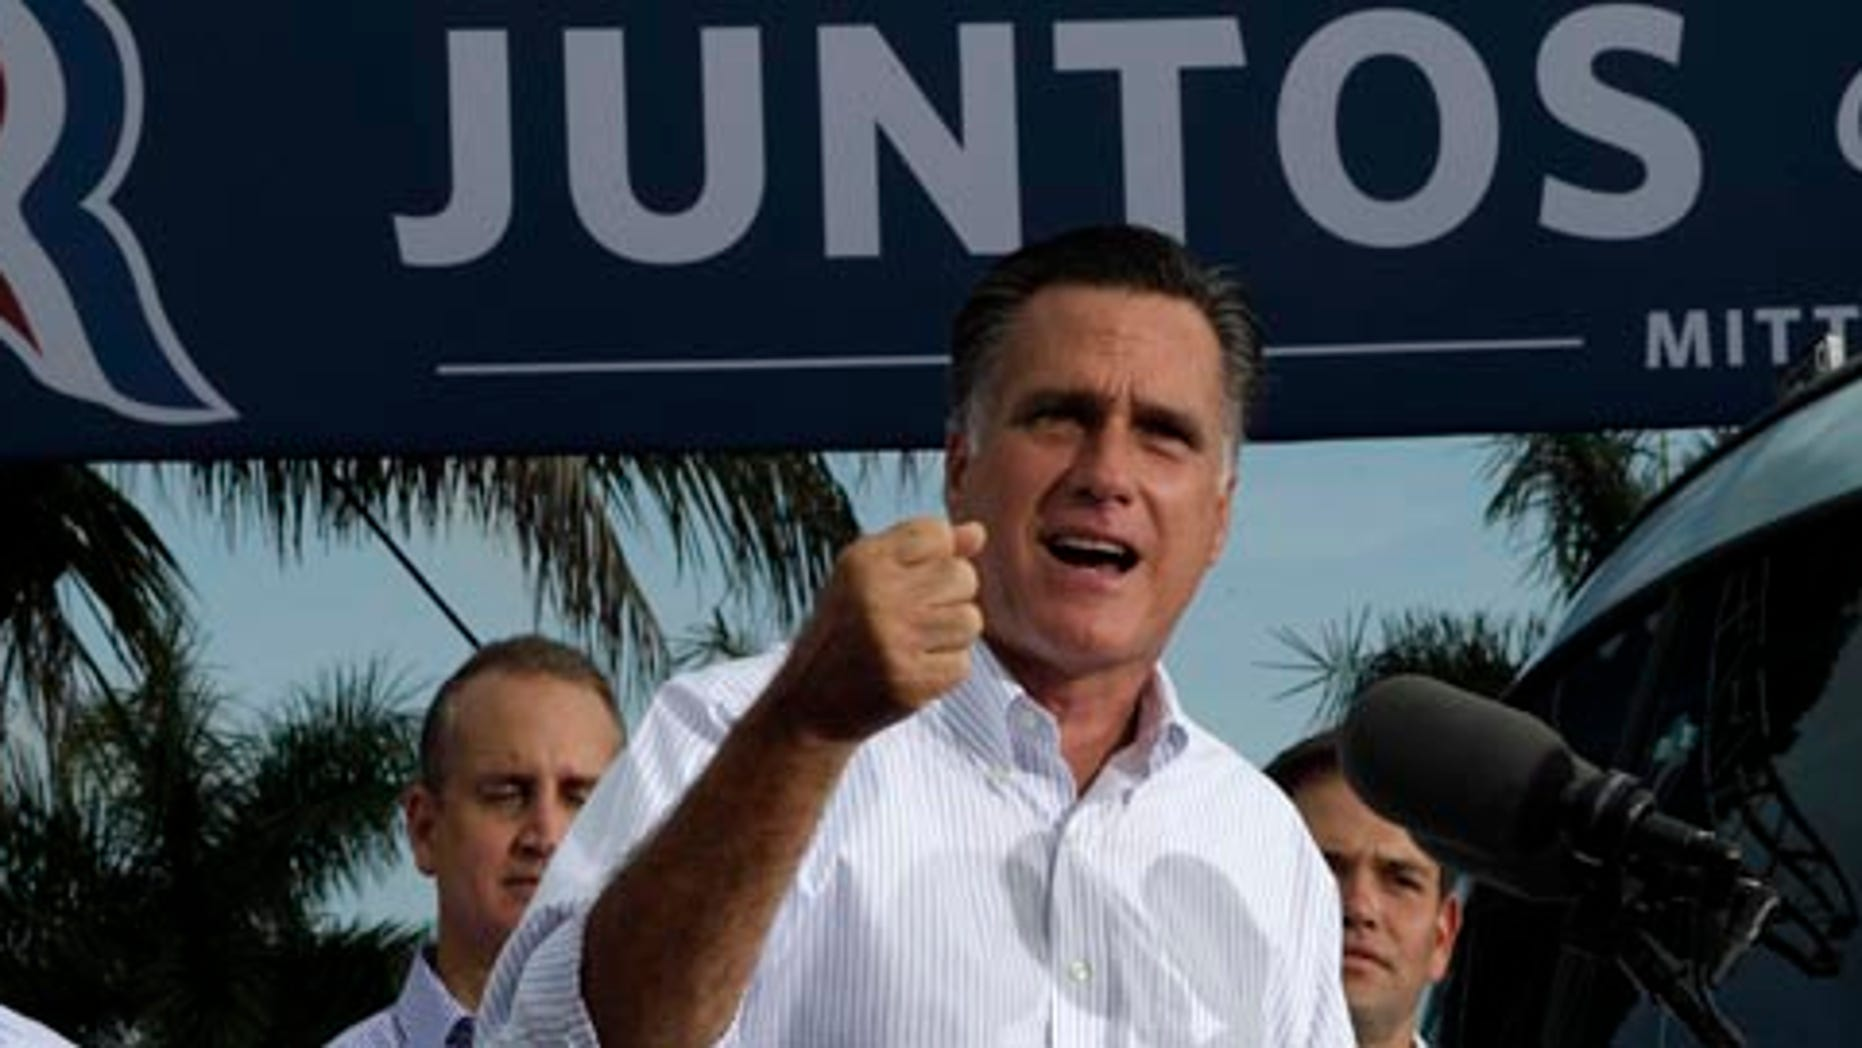 GOP presidential nominee Mitt Romney has said he is aiming for at least 38 percent of the Latino vote.